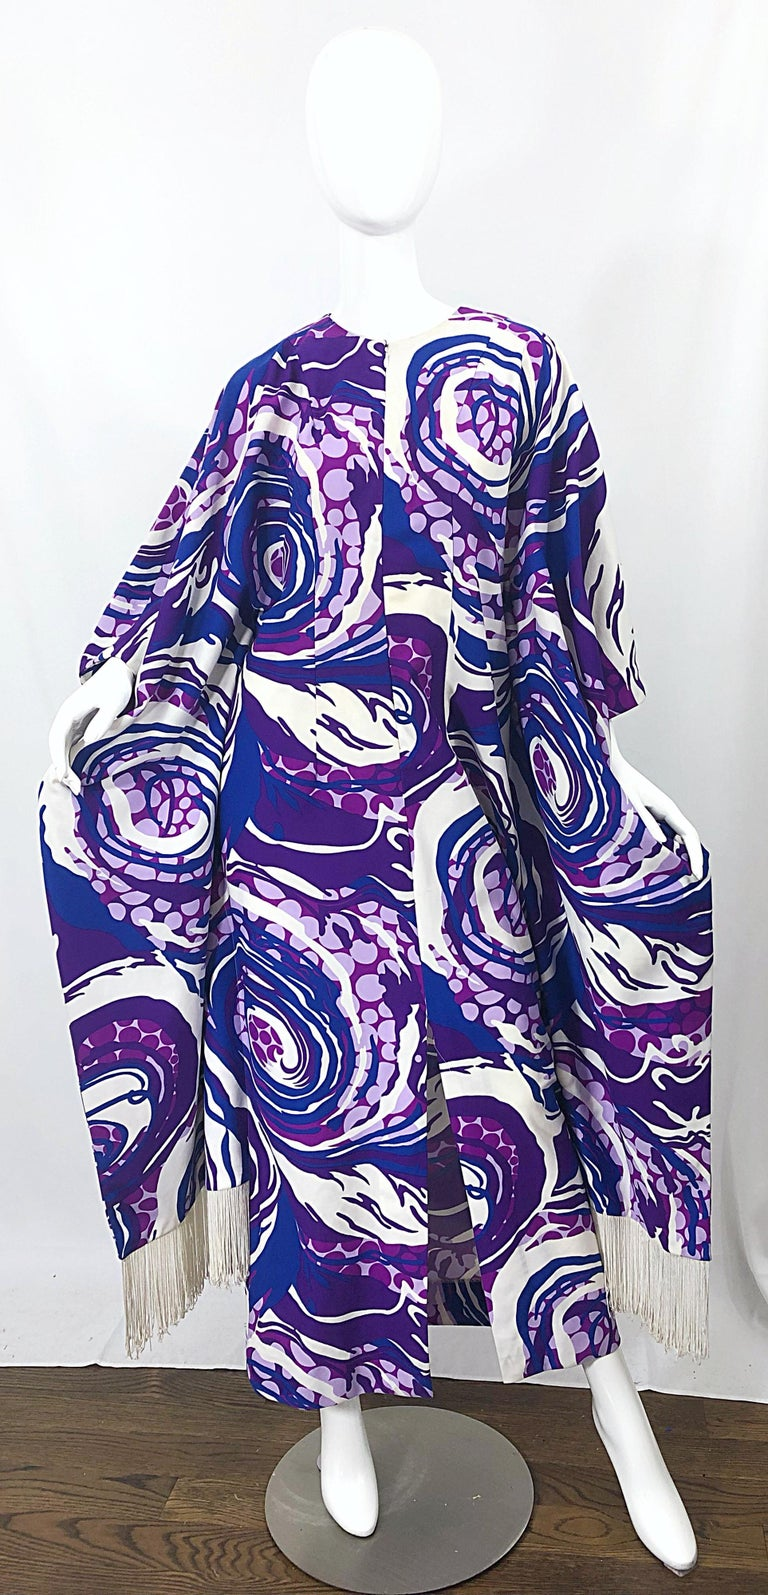 Amazing 1970s purple, blue and white swirl abstract print fringed kaftan / maxi dress! Features white fringe at each side hem. Hidden zipper up the front. In great condition.  Can fit most sizes, due to the natural fit of a caftan